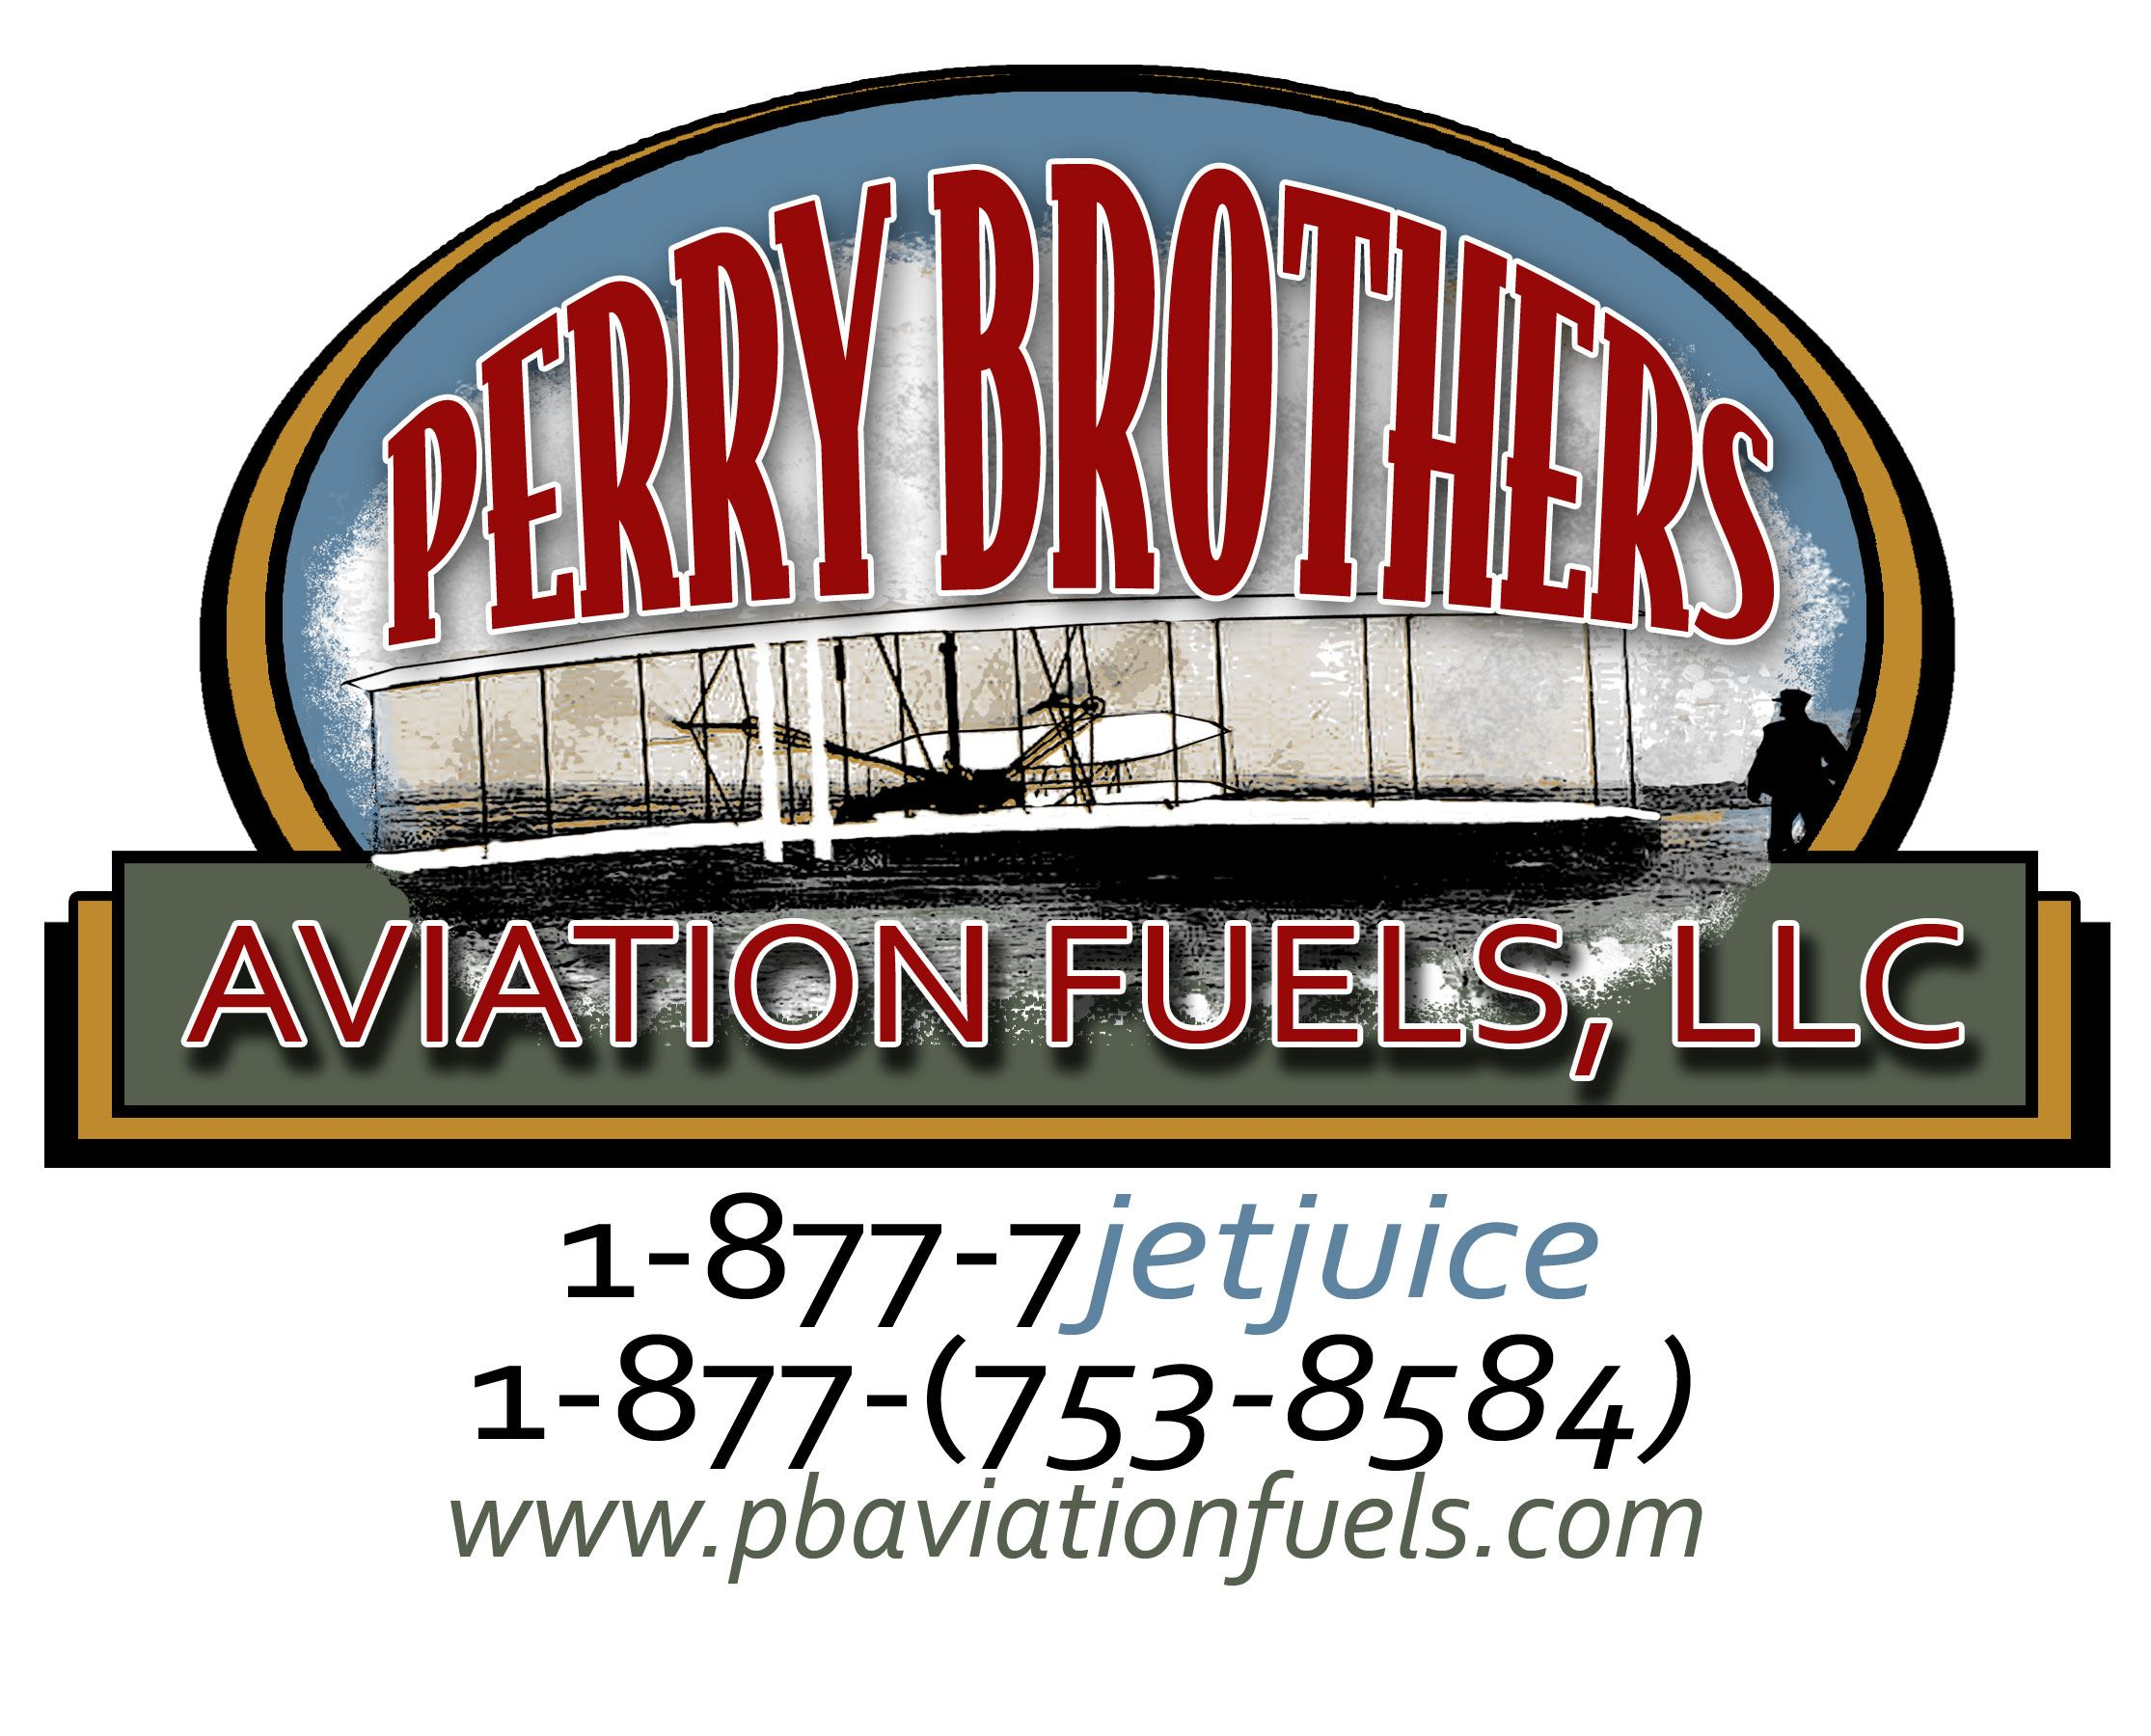 Perry Brothers Aviation Logo